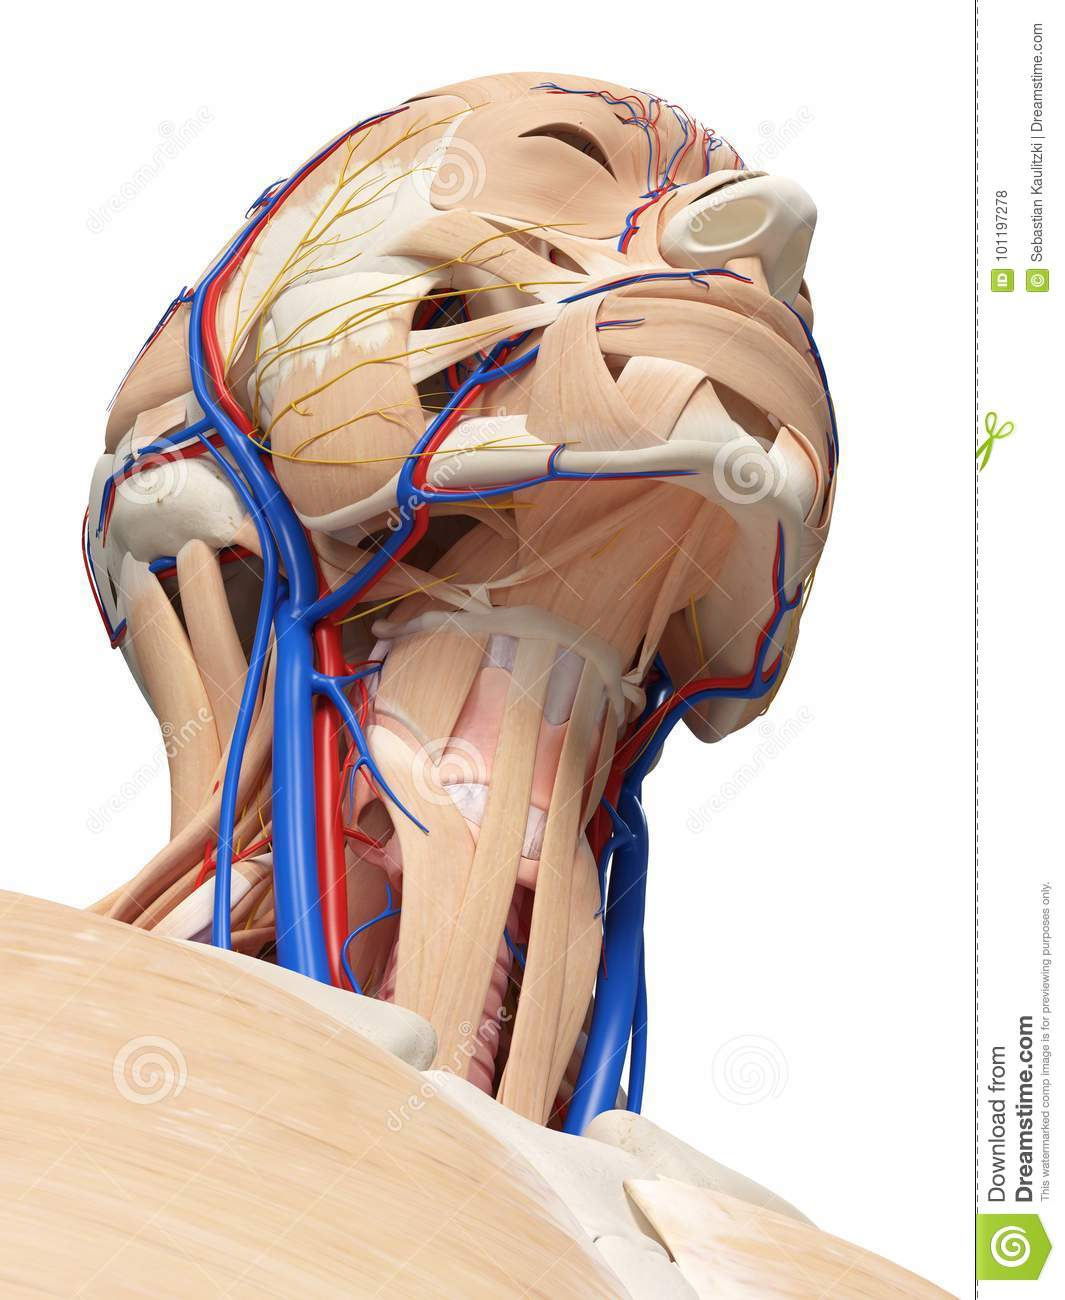 The gross human anatomy 3d atlas of the head and neck, showing the.